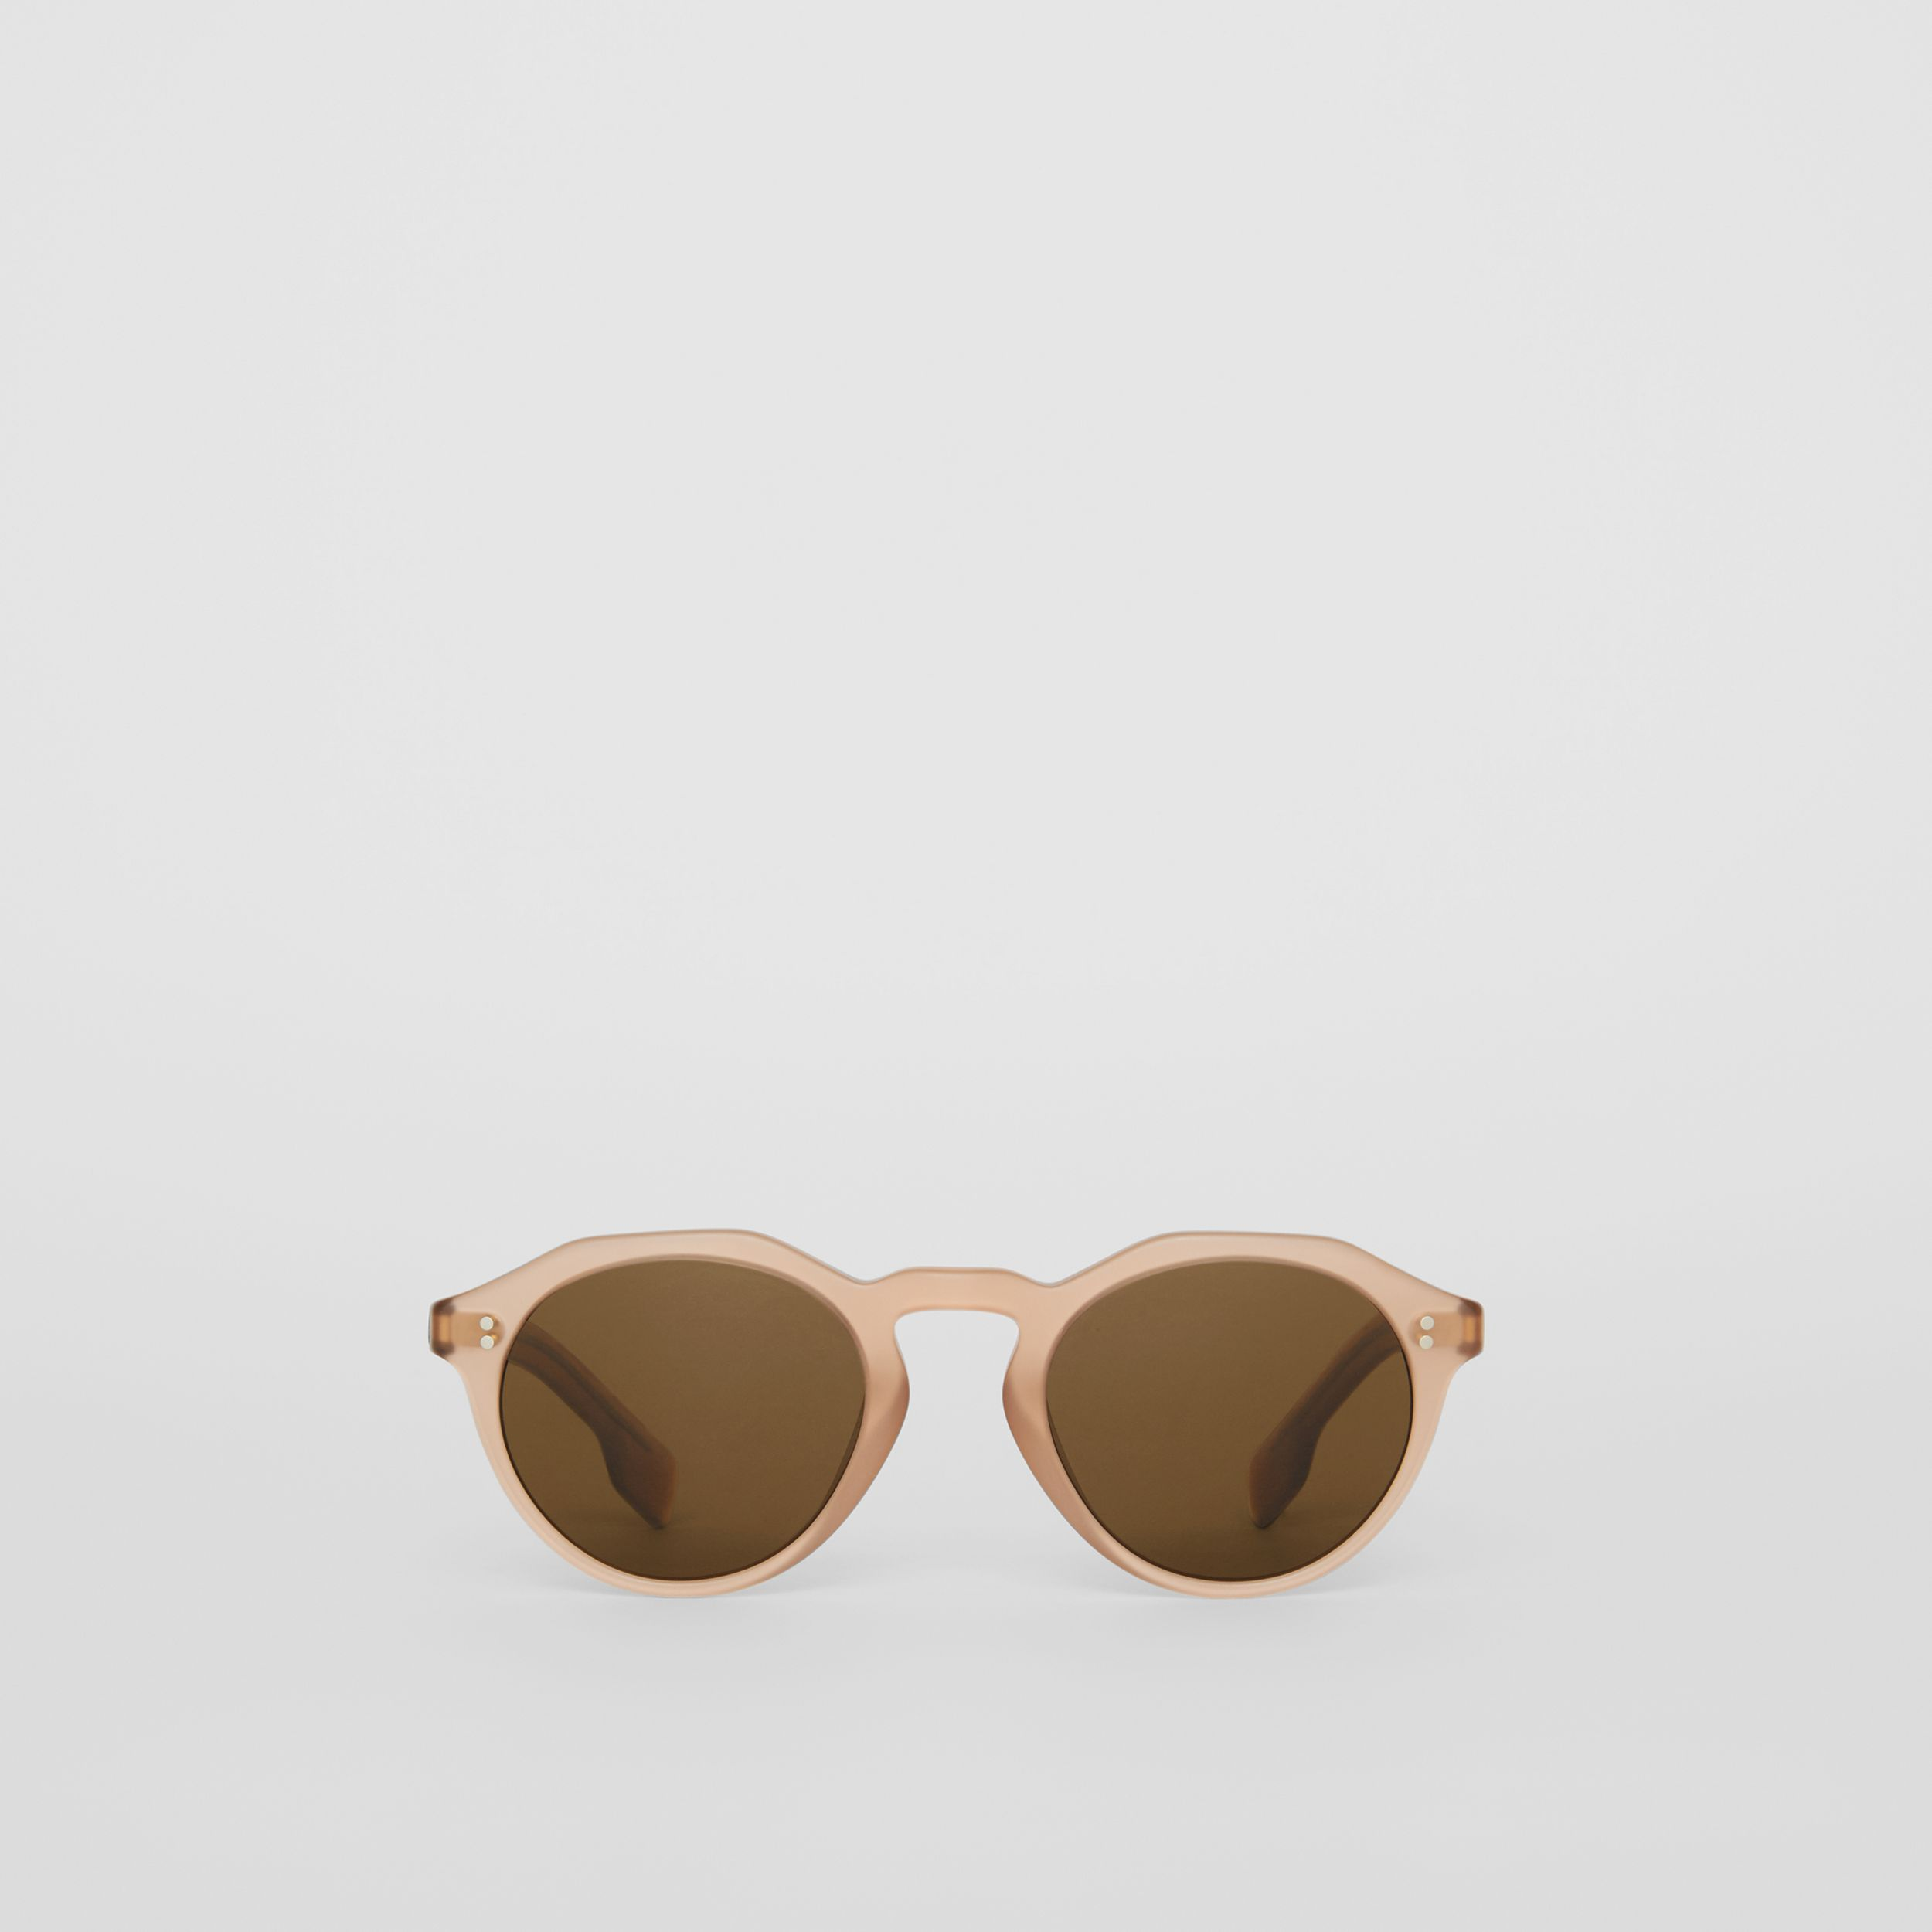 Keyhole Round Frame Sunglasses in Brown | Burberry - 1